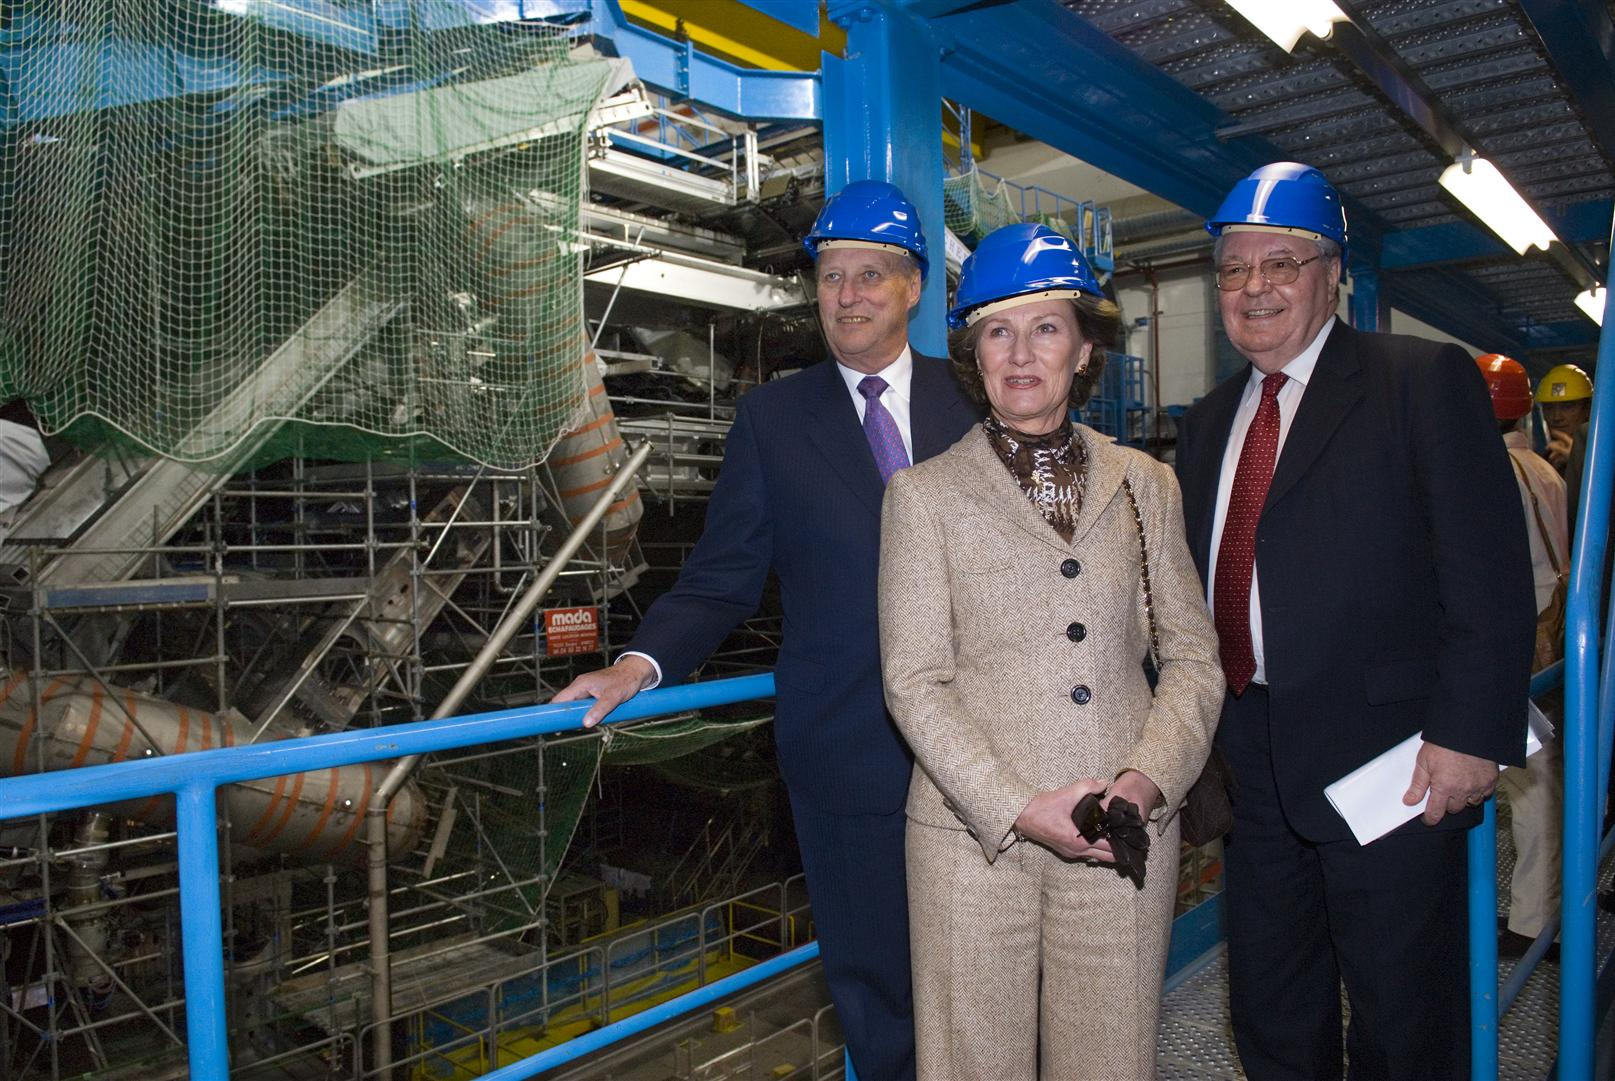 King Harald V and Queen Sonja of Norway visit CERN